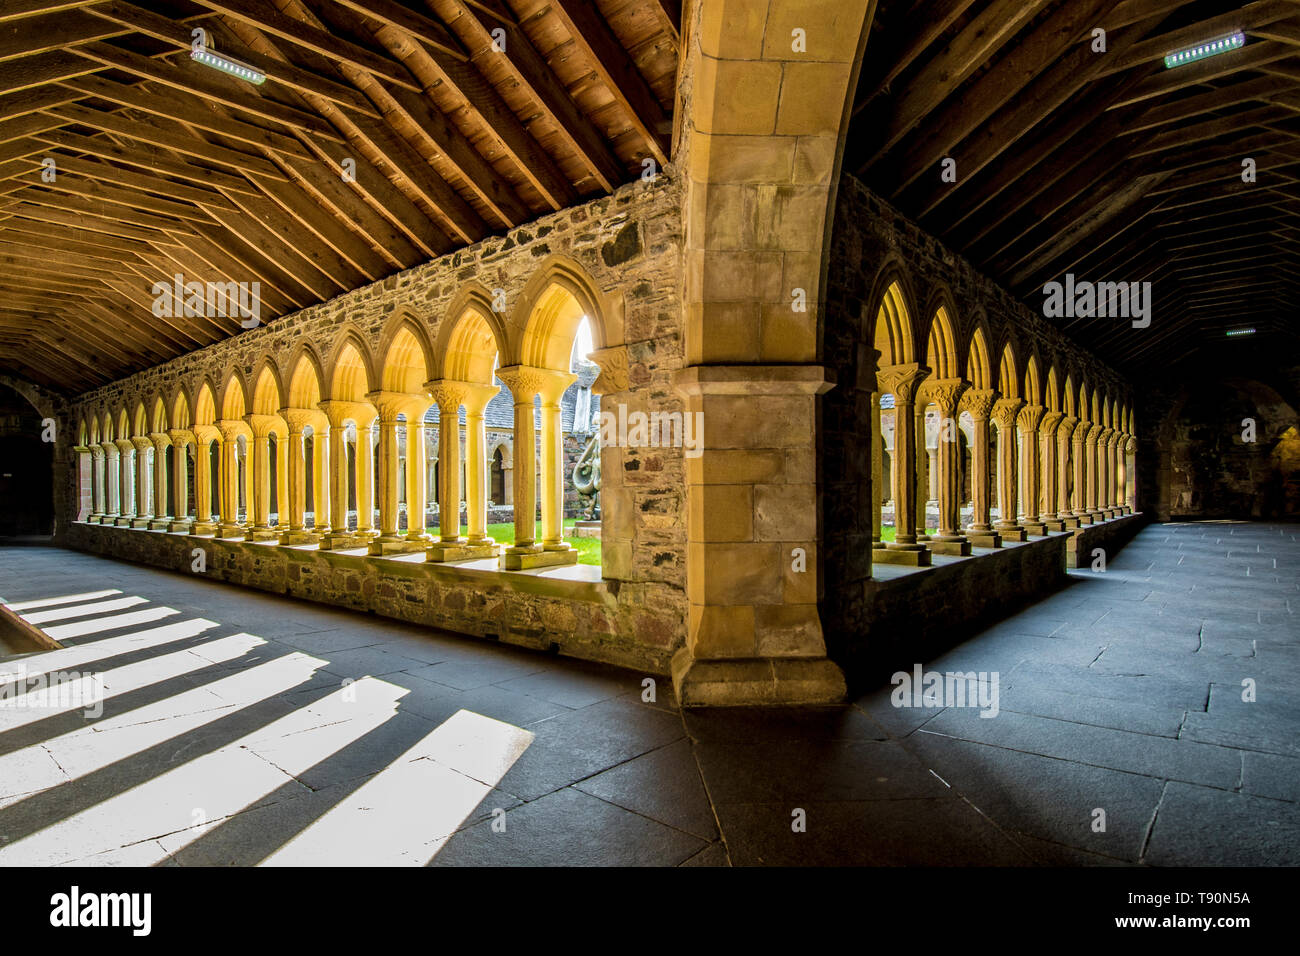 The Cloisters of Iona Abbey - Stock Image